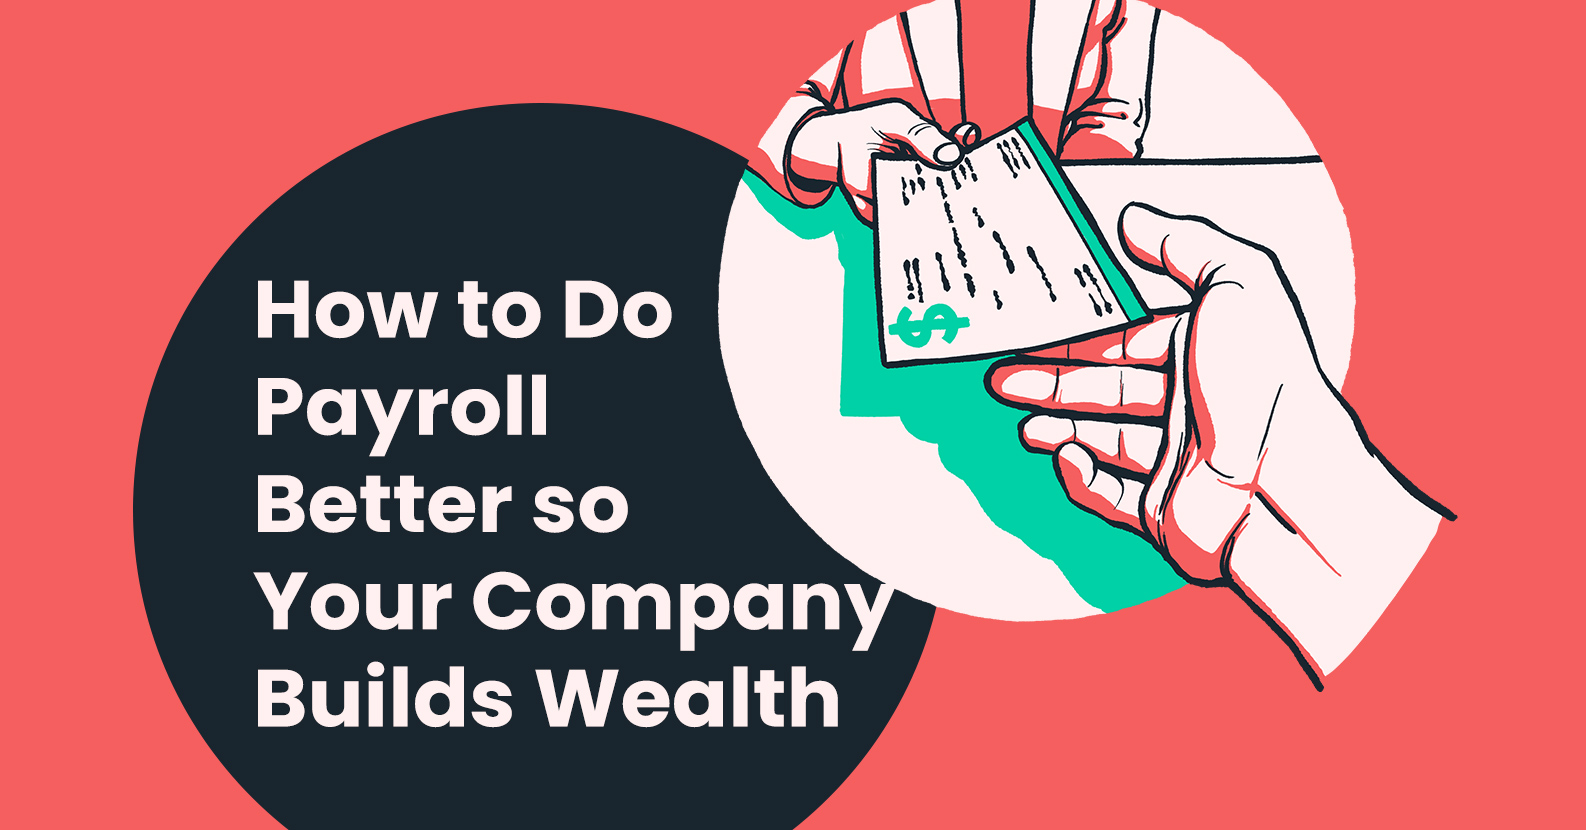 How to Do Payroll Better to Build Company Wealth